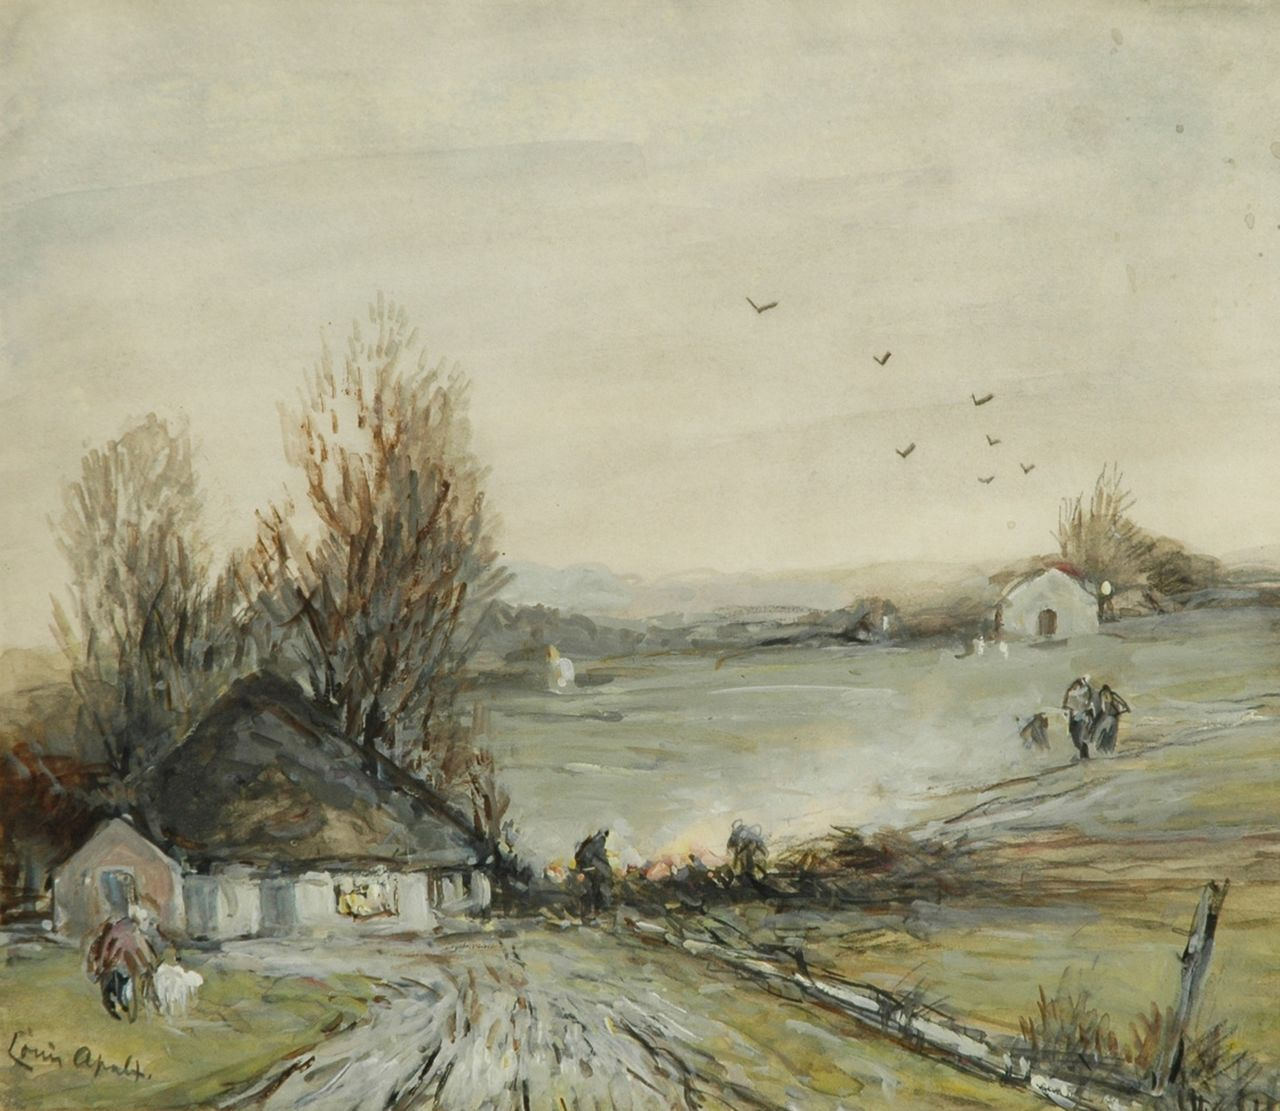 Apol L.F.H.  | Lodewijk Franciscus Hendrik 'Louis' Apol, Farmers stoking up a fire near a farm, pencil and watercolour on paper 21.9 x 24.9 cm, signed l.l.